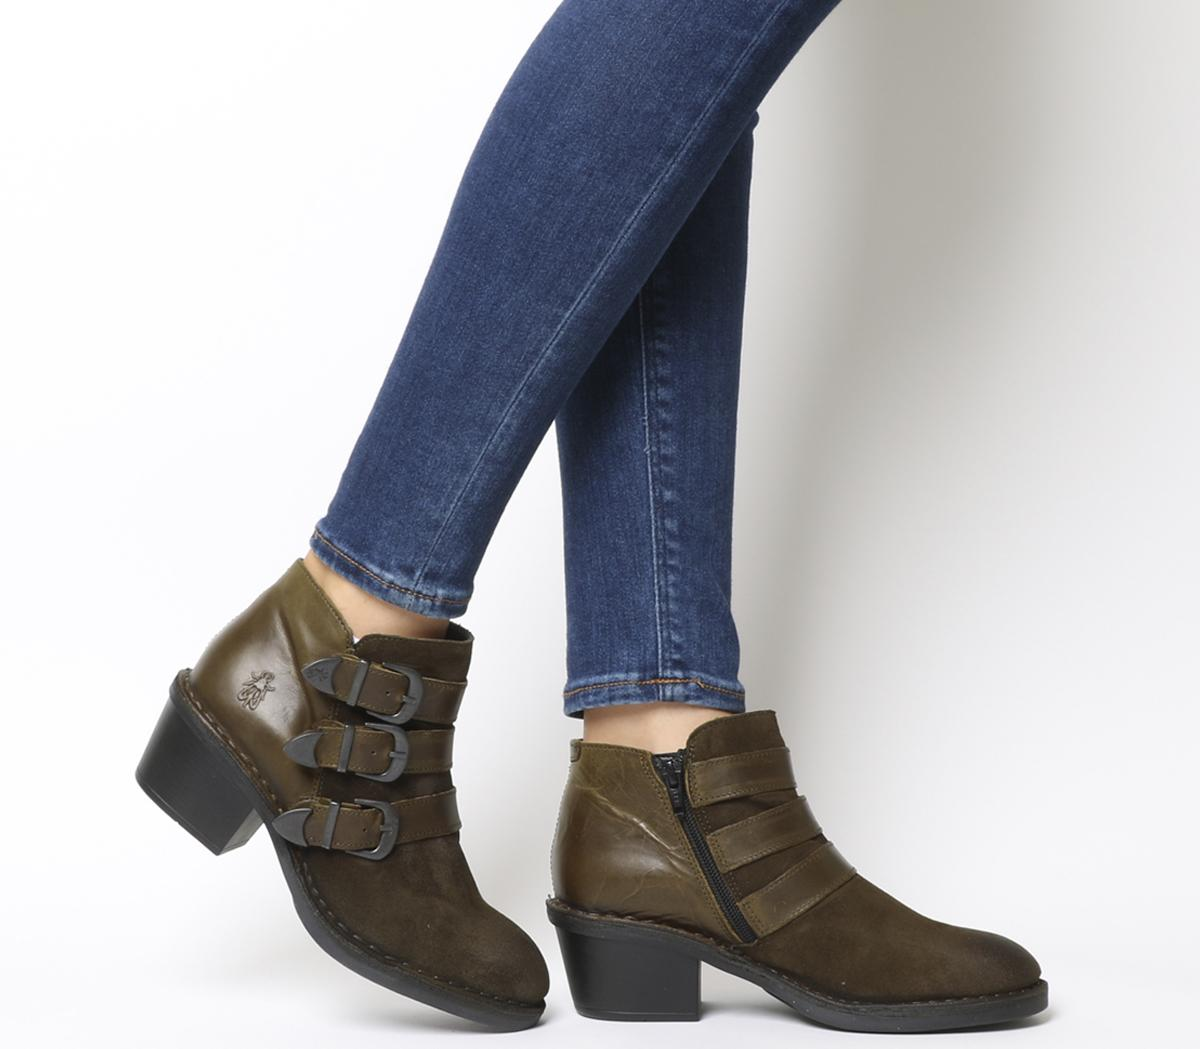 Dalo Buckle Boots